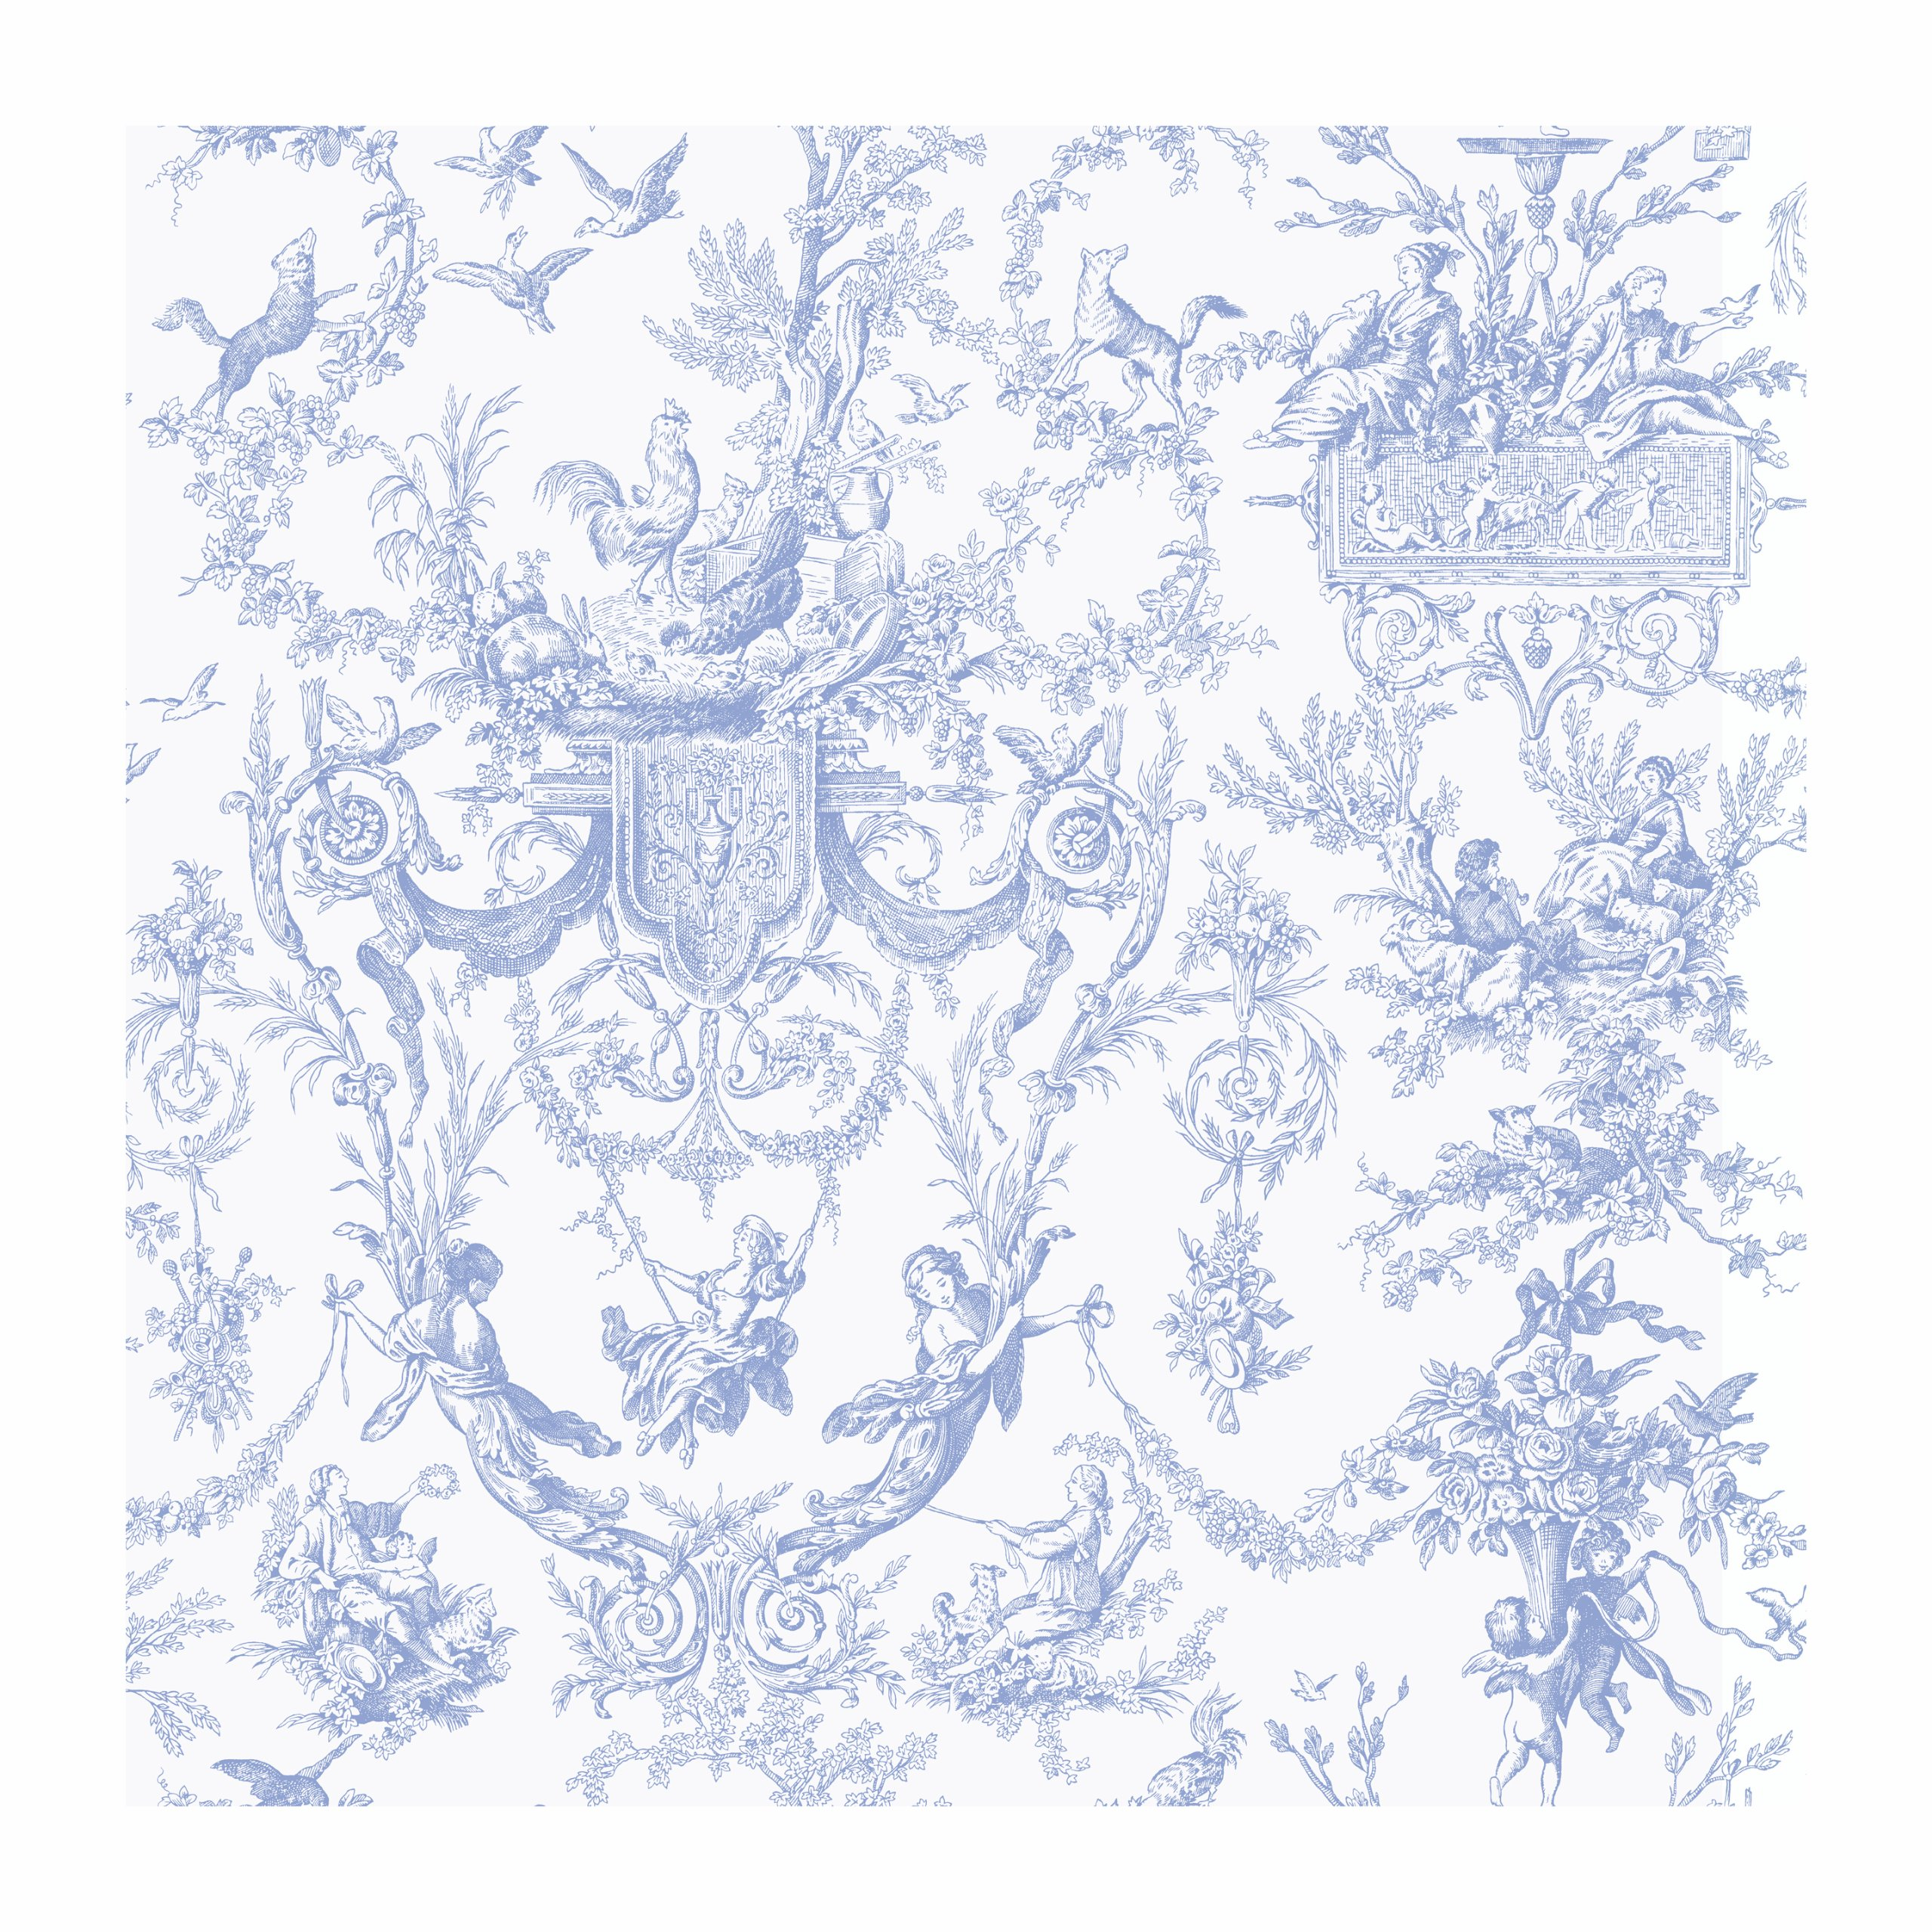 York Wallcoverings AT4241 Ashford Toiles Old World Toile Prepasted Wallpaper, White/Blue by York Wallcoverings